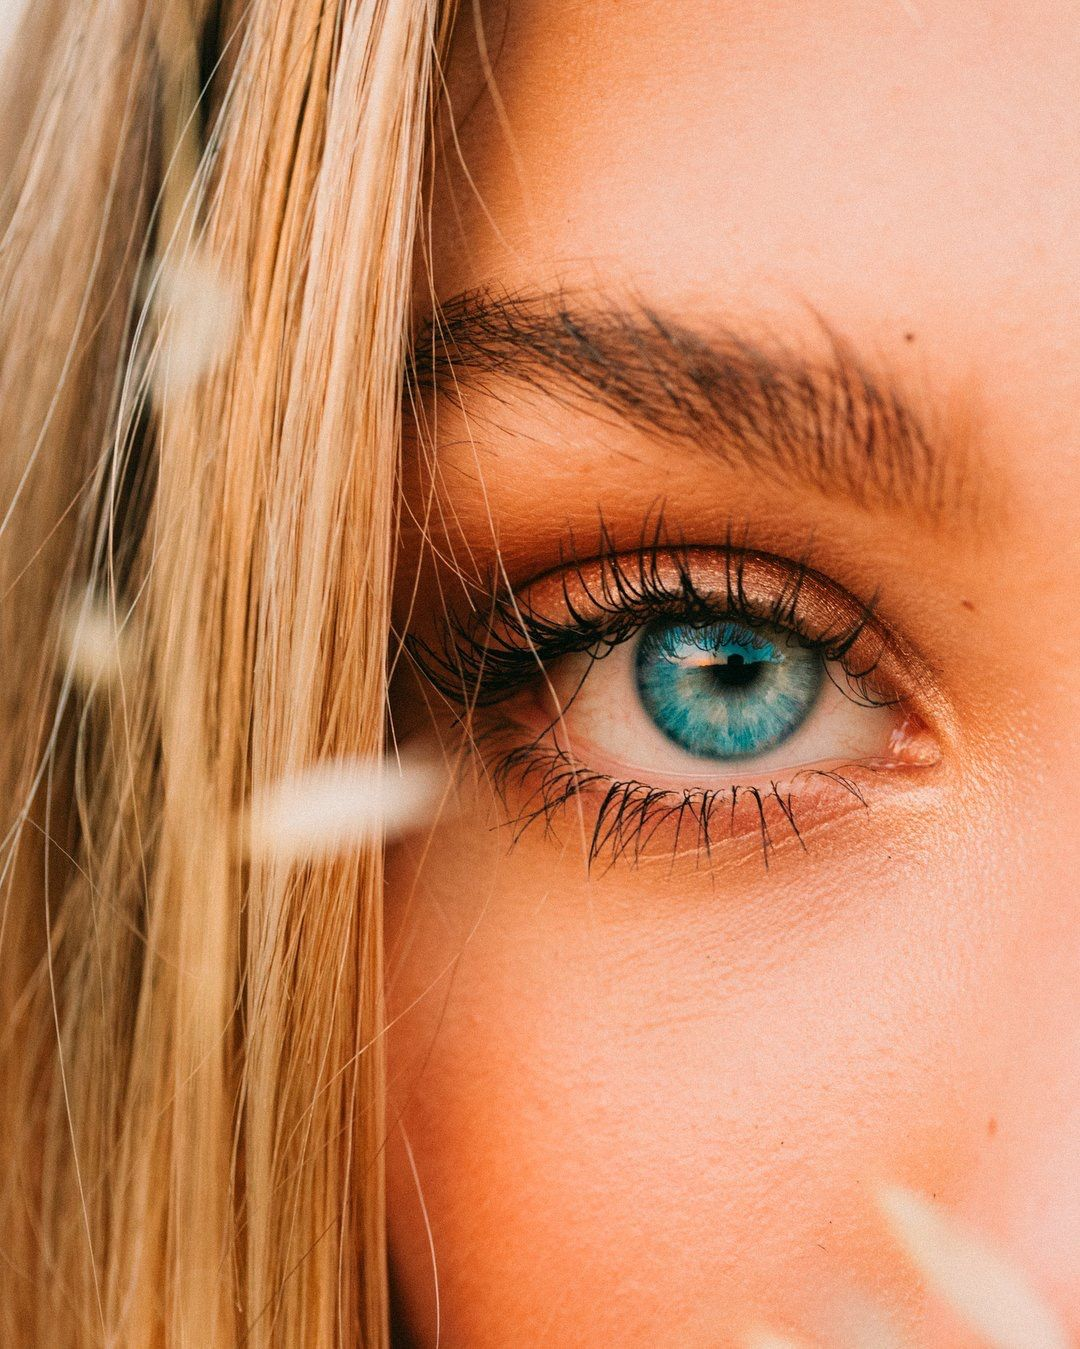 Rare Positive Images Ethc Peple Asians With Rare Genetics From Left To Right Blue Eyes Red Hai Blue Eye Color People With Blue Eyes Black And Blonde